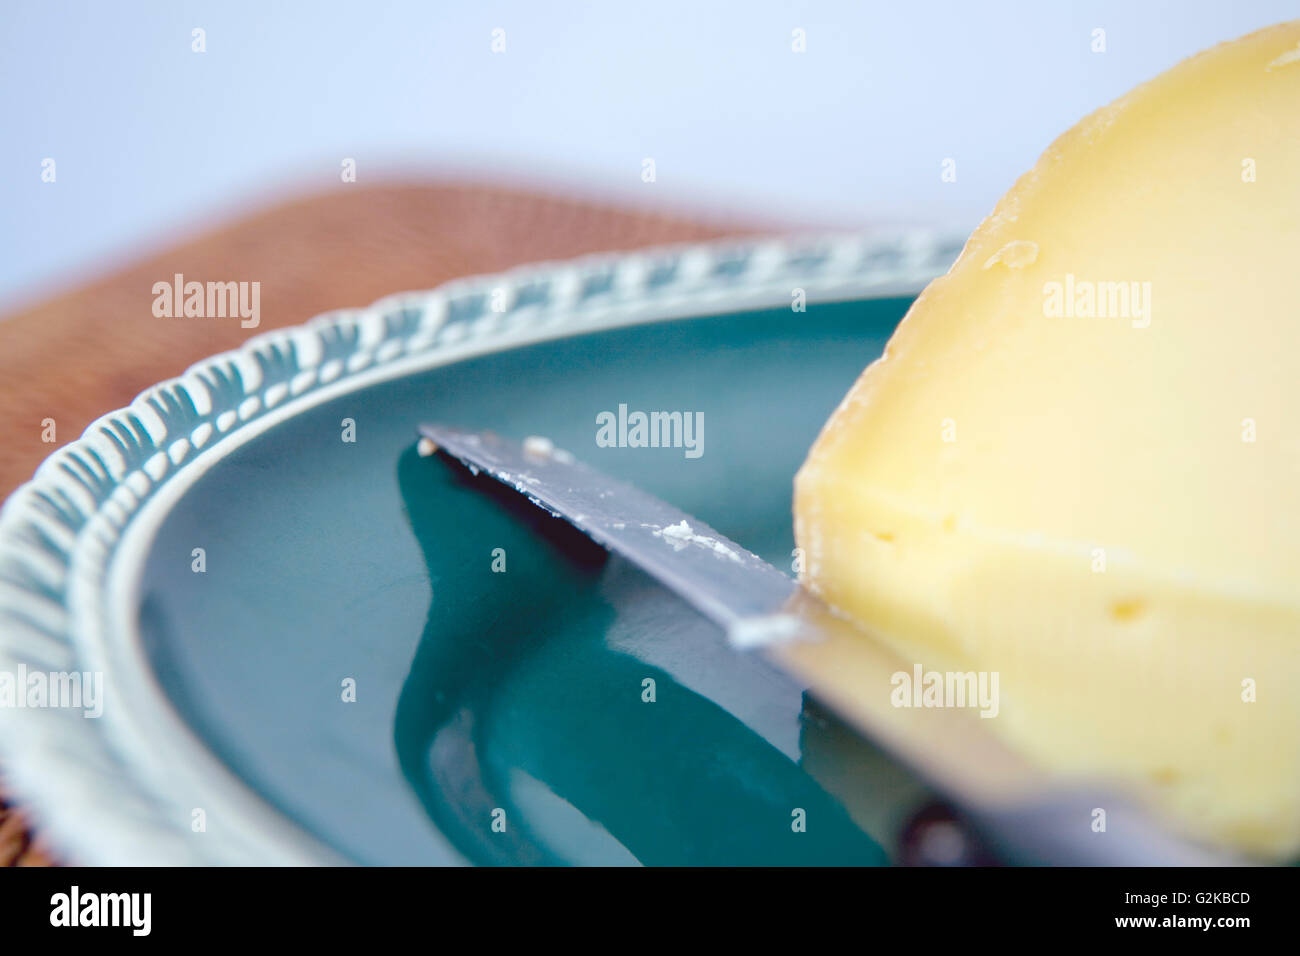 Cheese and a Knife on a Platter - Stock Image